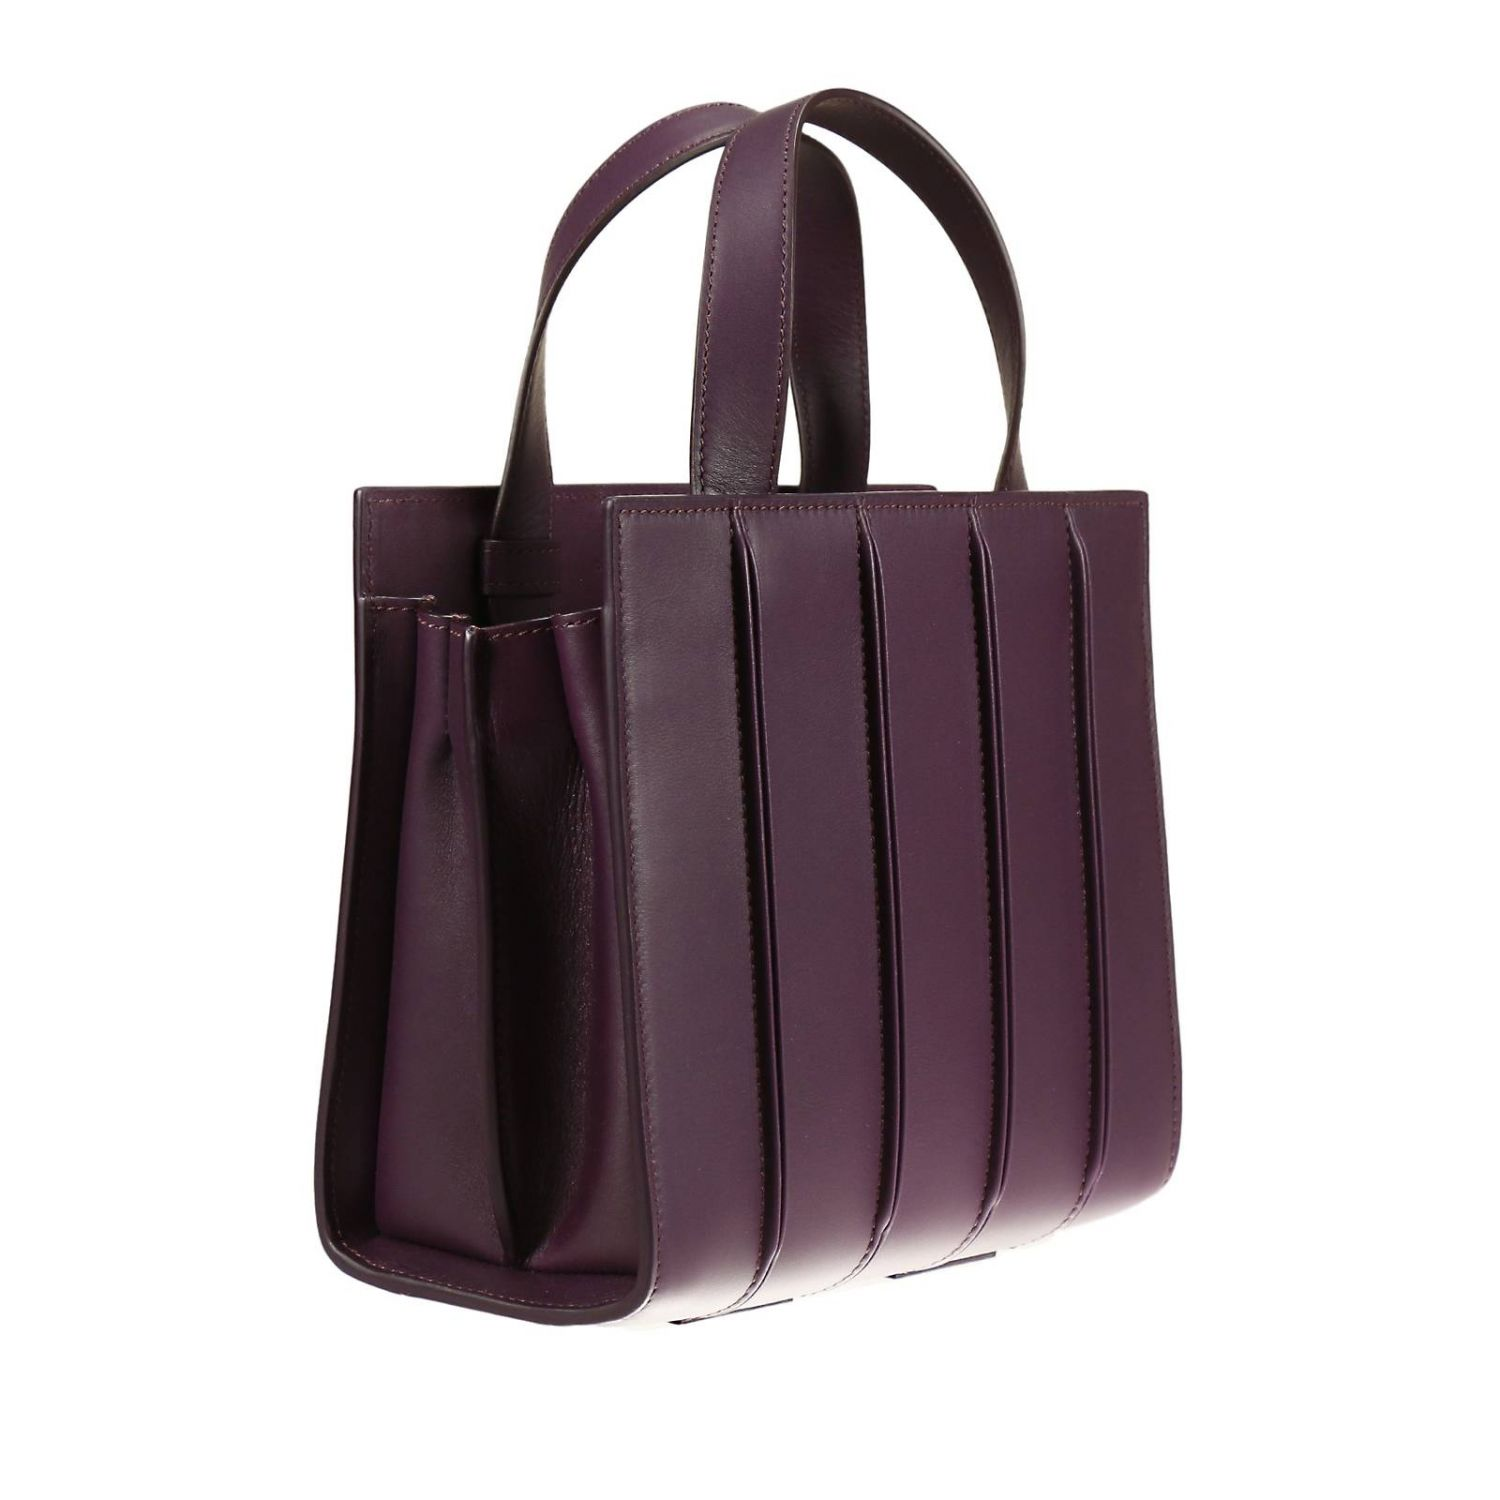 Max Mara Whitney Bag: the handbag realized with Renzo Piano for the Whitney Museum